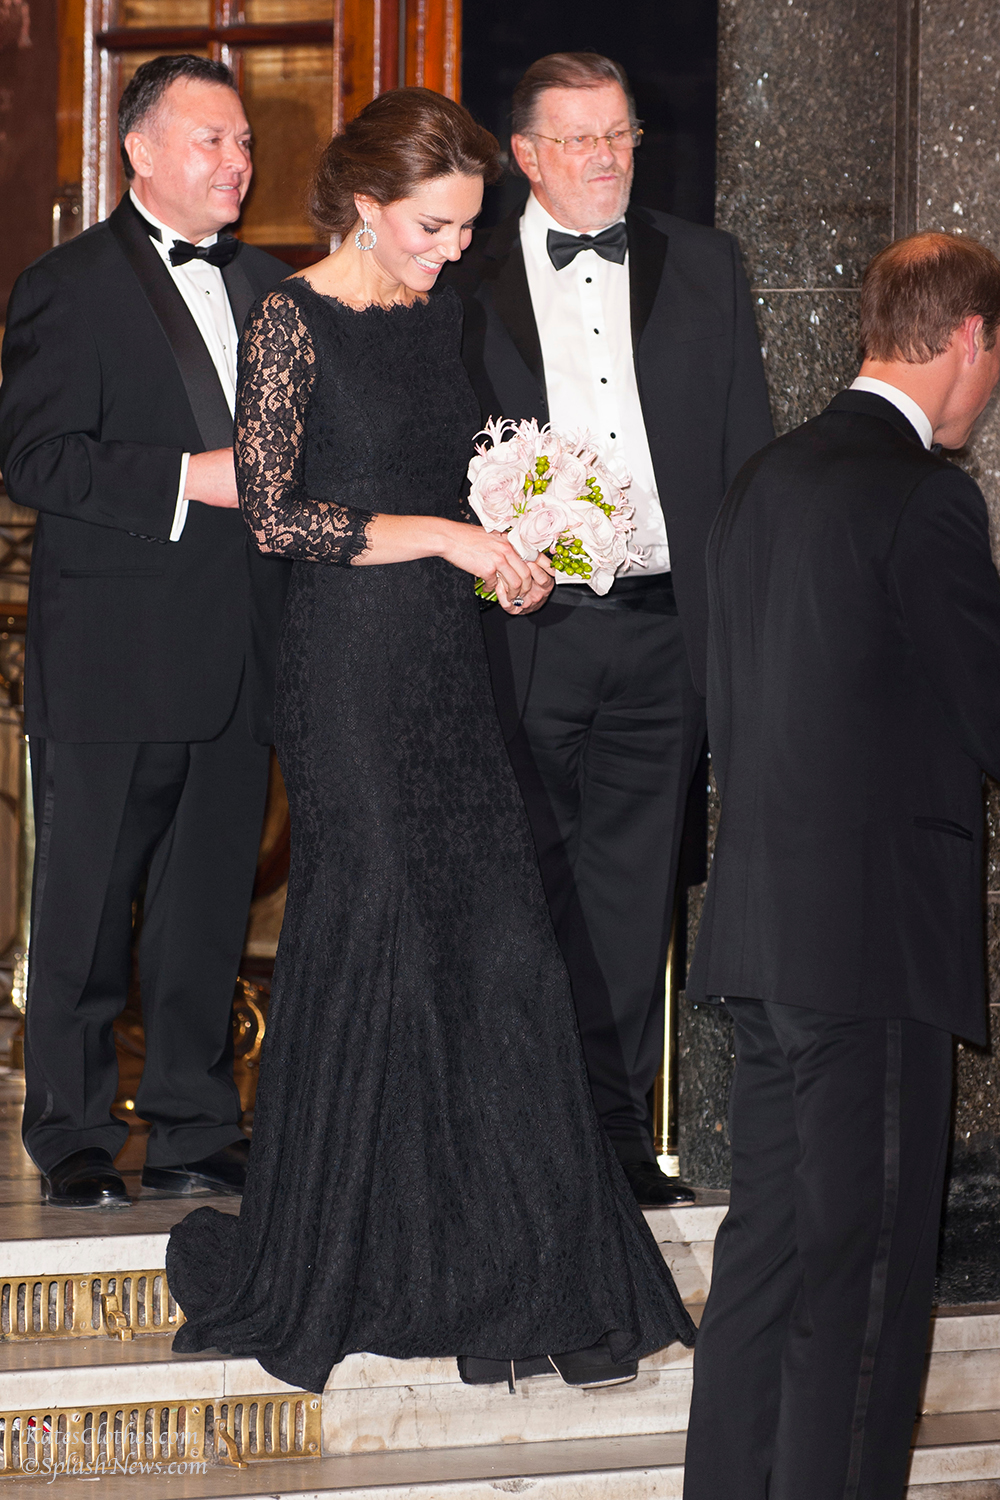 The Duke and Duchess of Cambridge leave the Royal Variety Performance